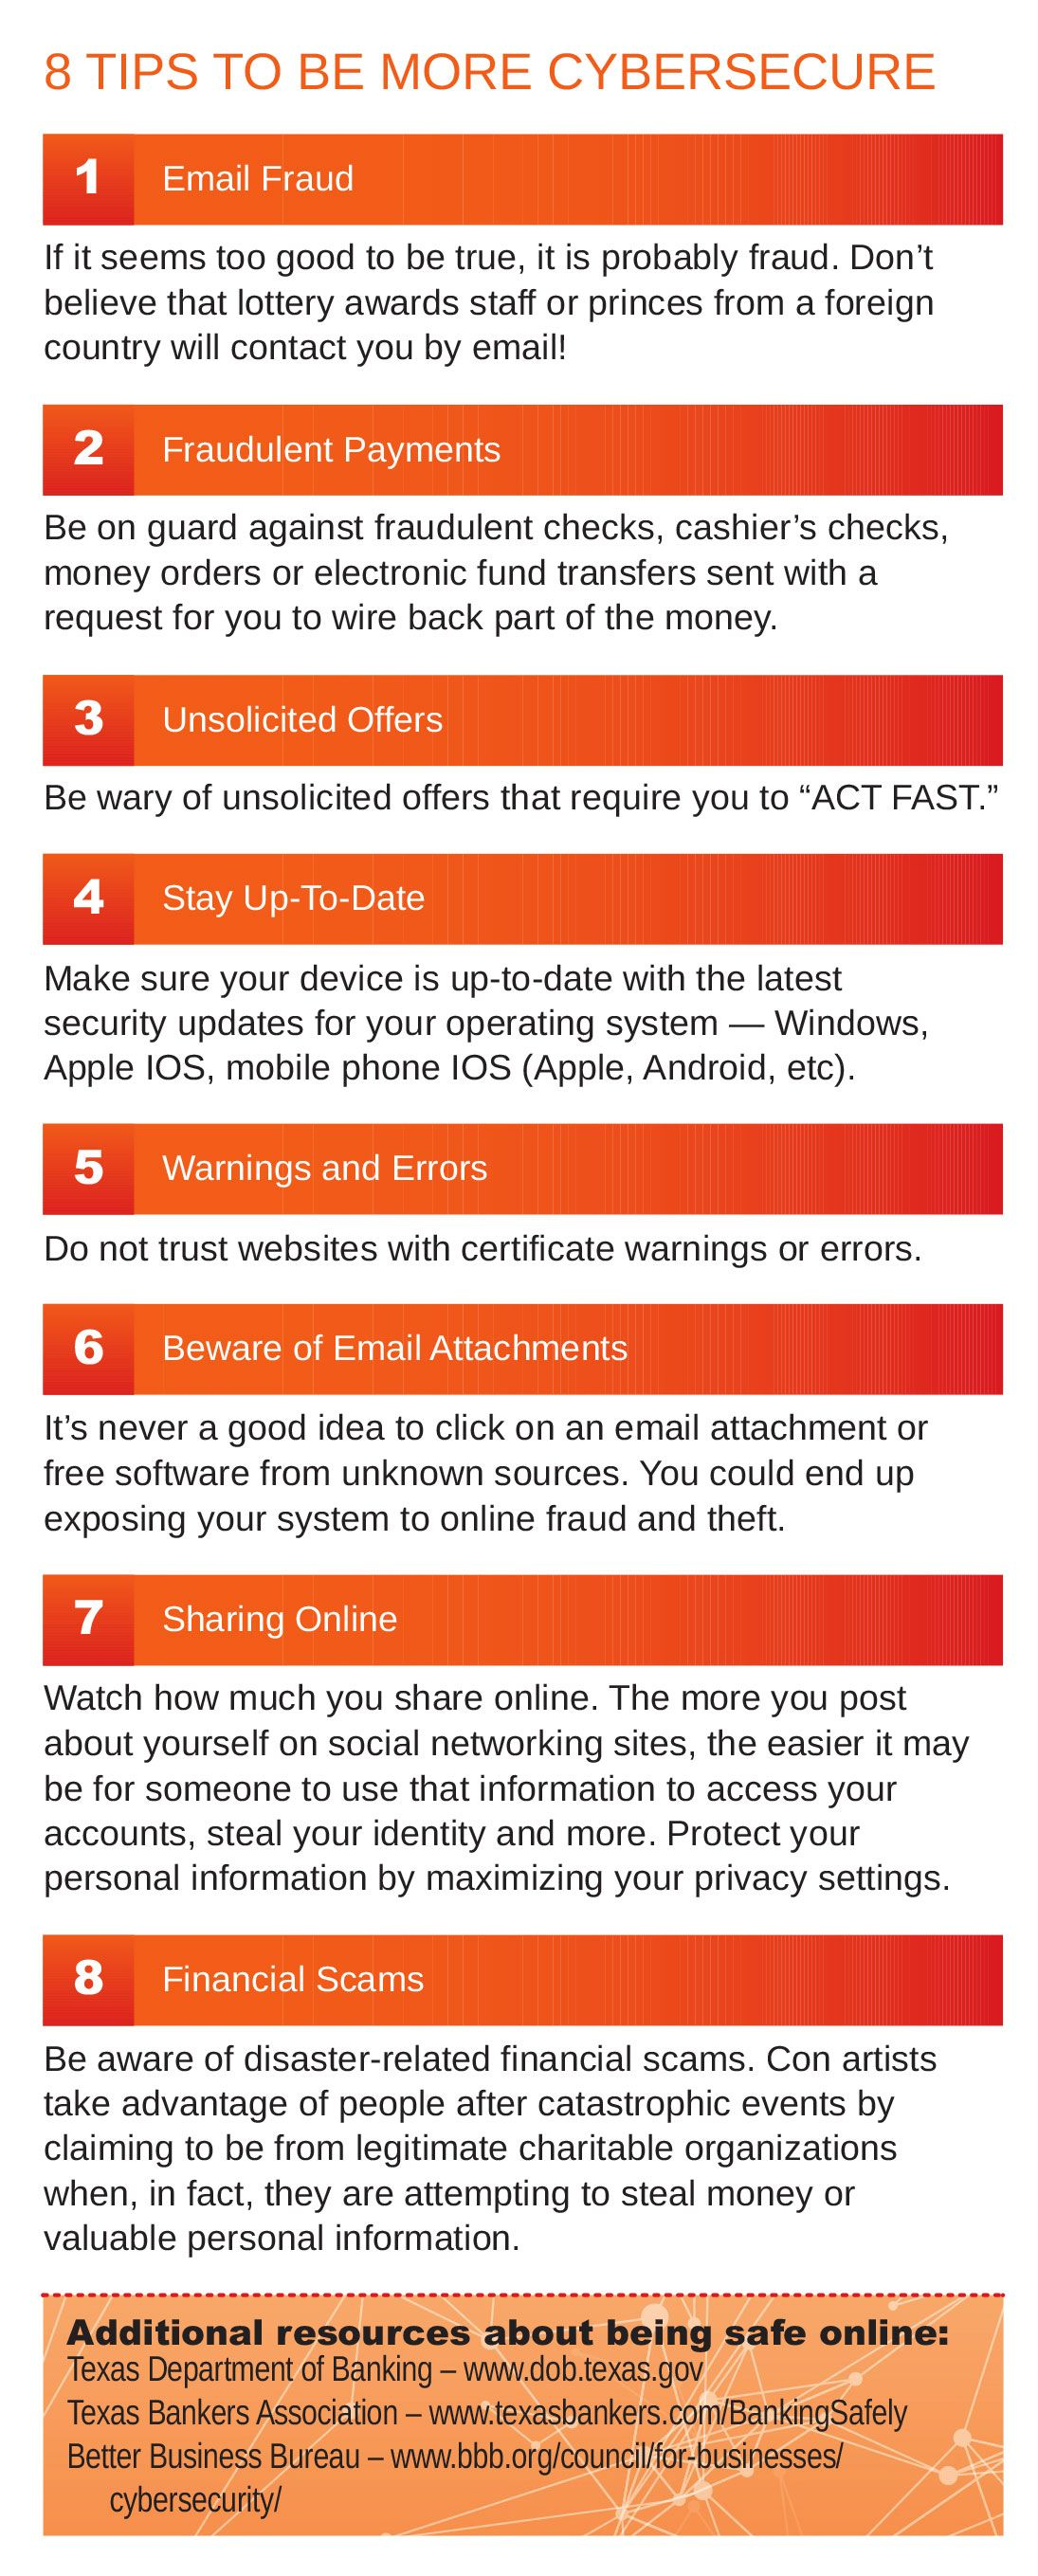 8 Tips to be more cybersecure